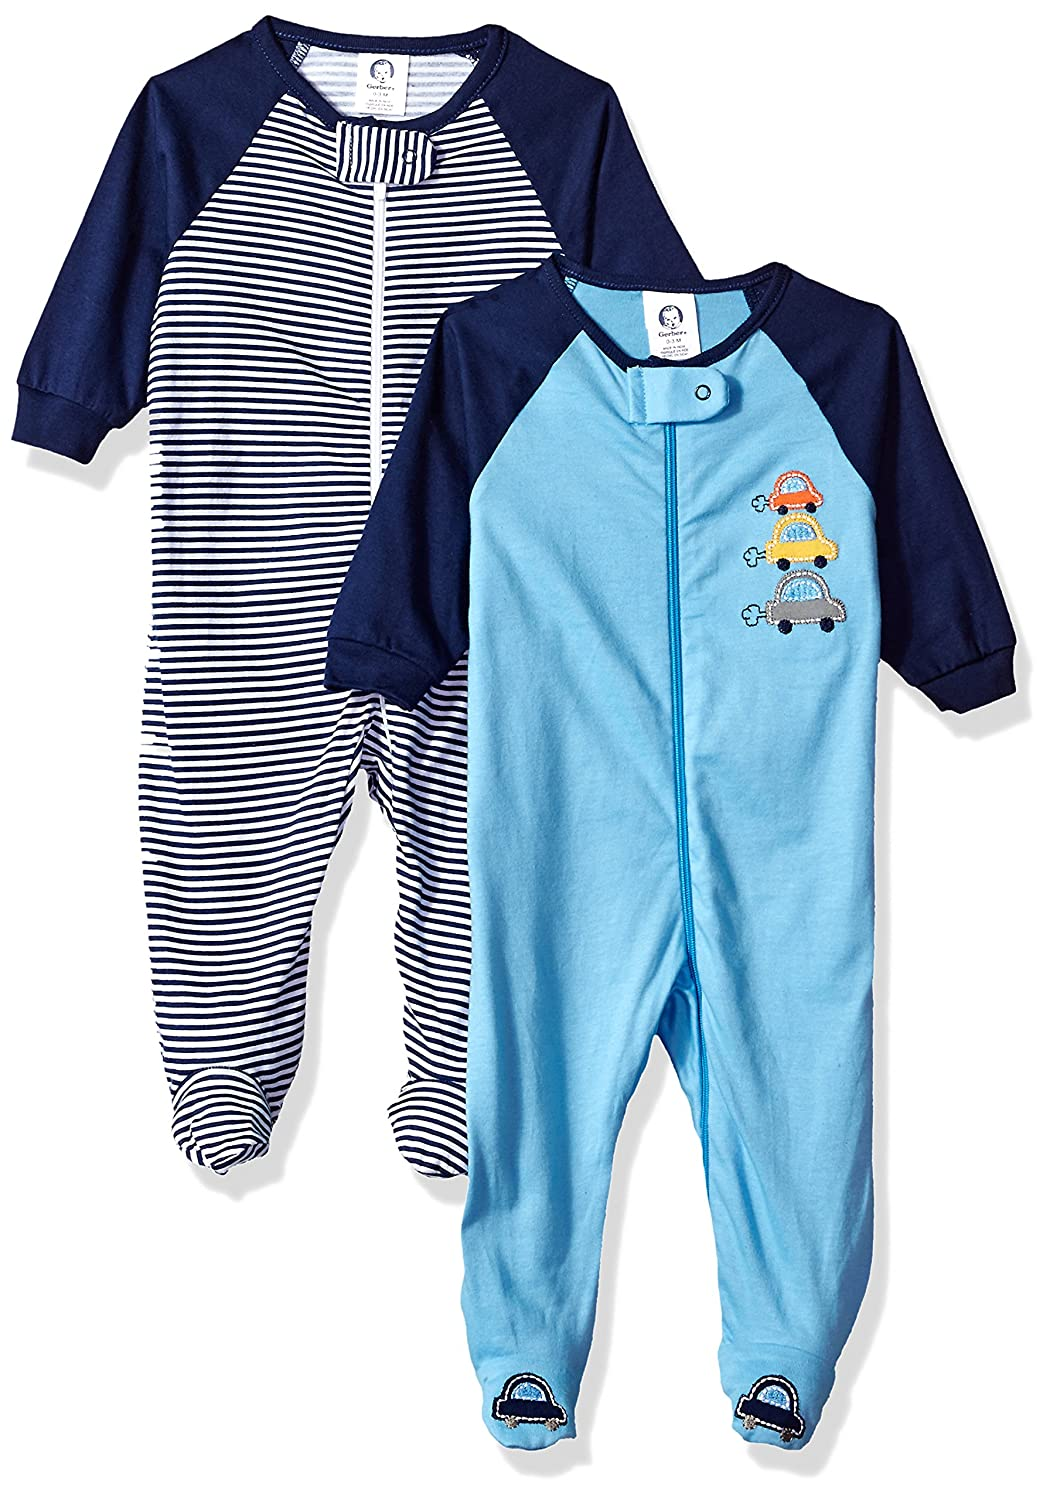 df0827146 Whether playtime or naptime, Gerber newborn zip-front sleep \'n play is the  perfect outfit! two-pack zipper sleepers with built-in feet to keep toes  warm.